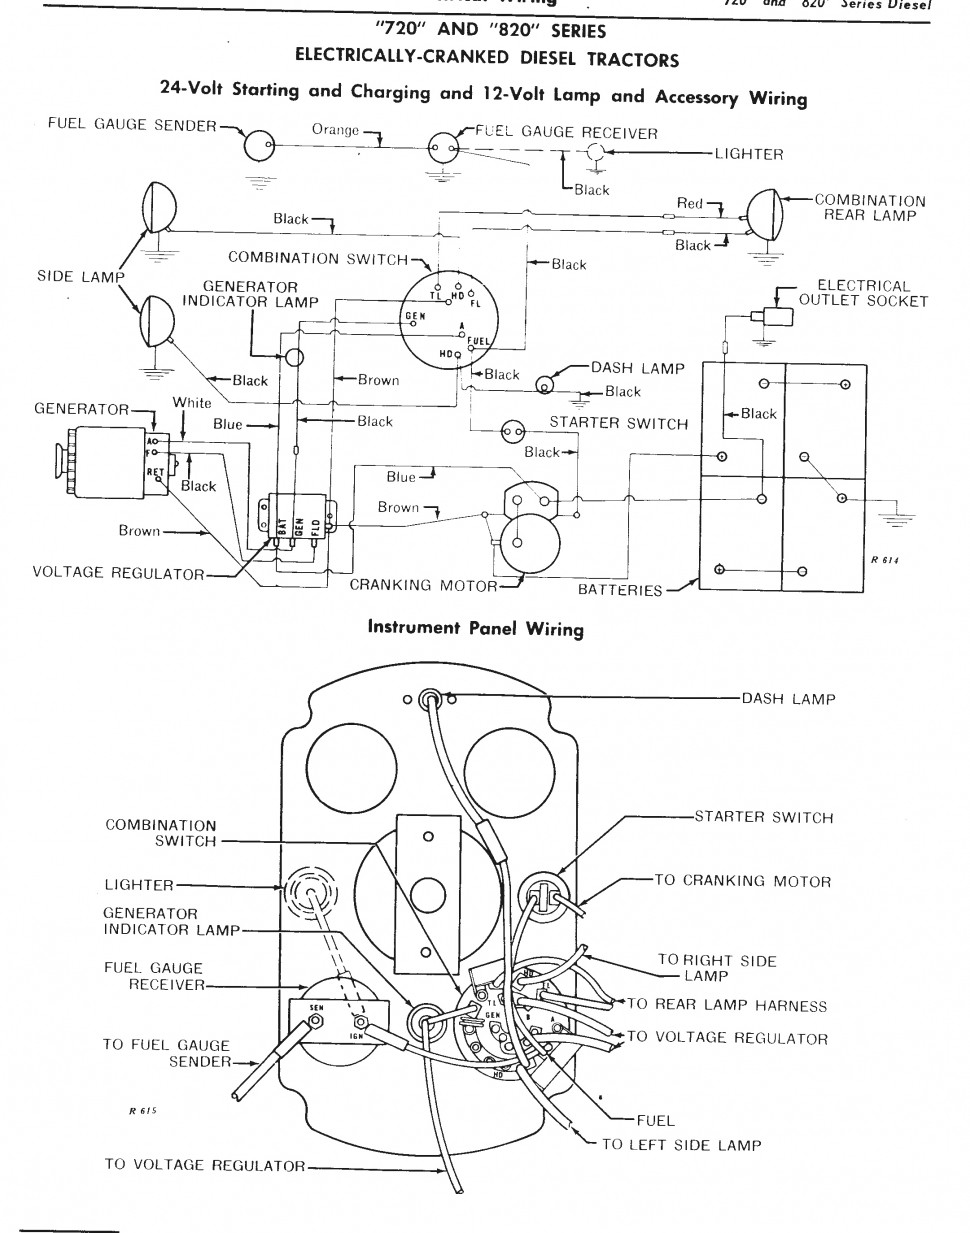 John Deere 3020 Fuel Gage Wiring Diagram Basic Guide